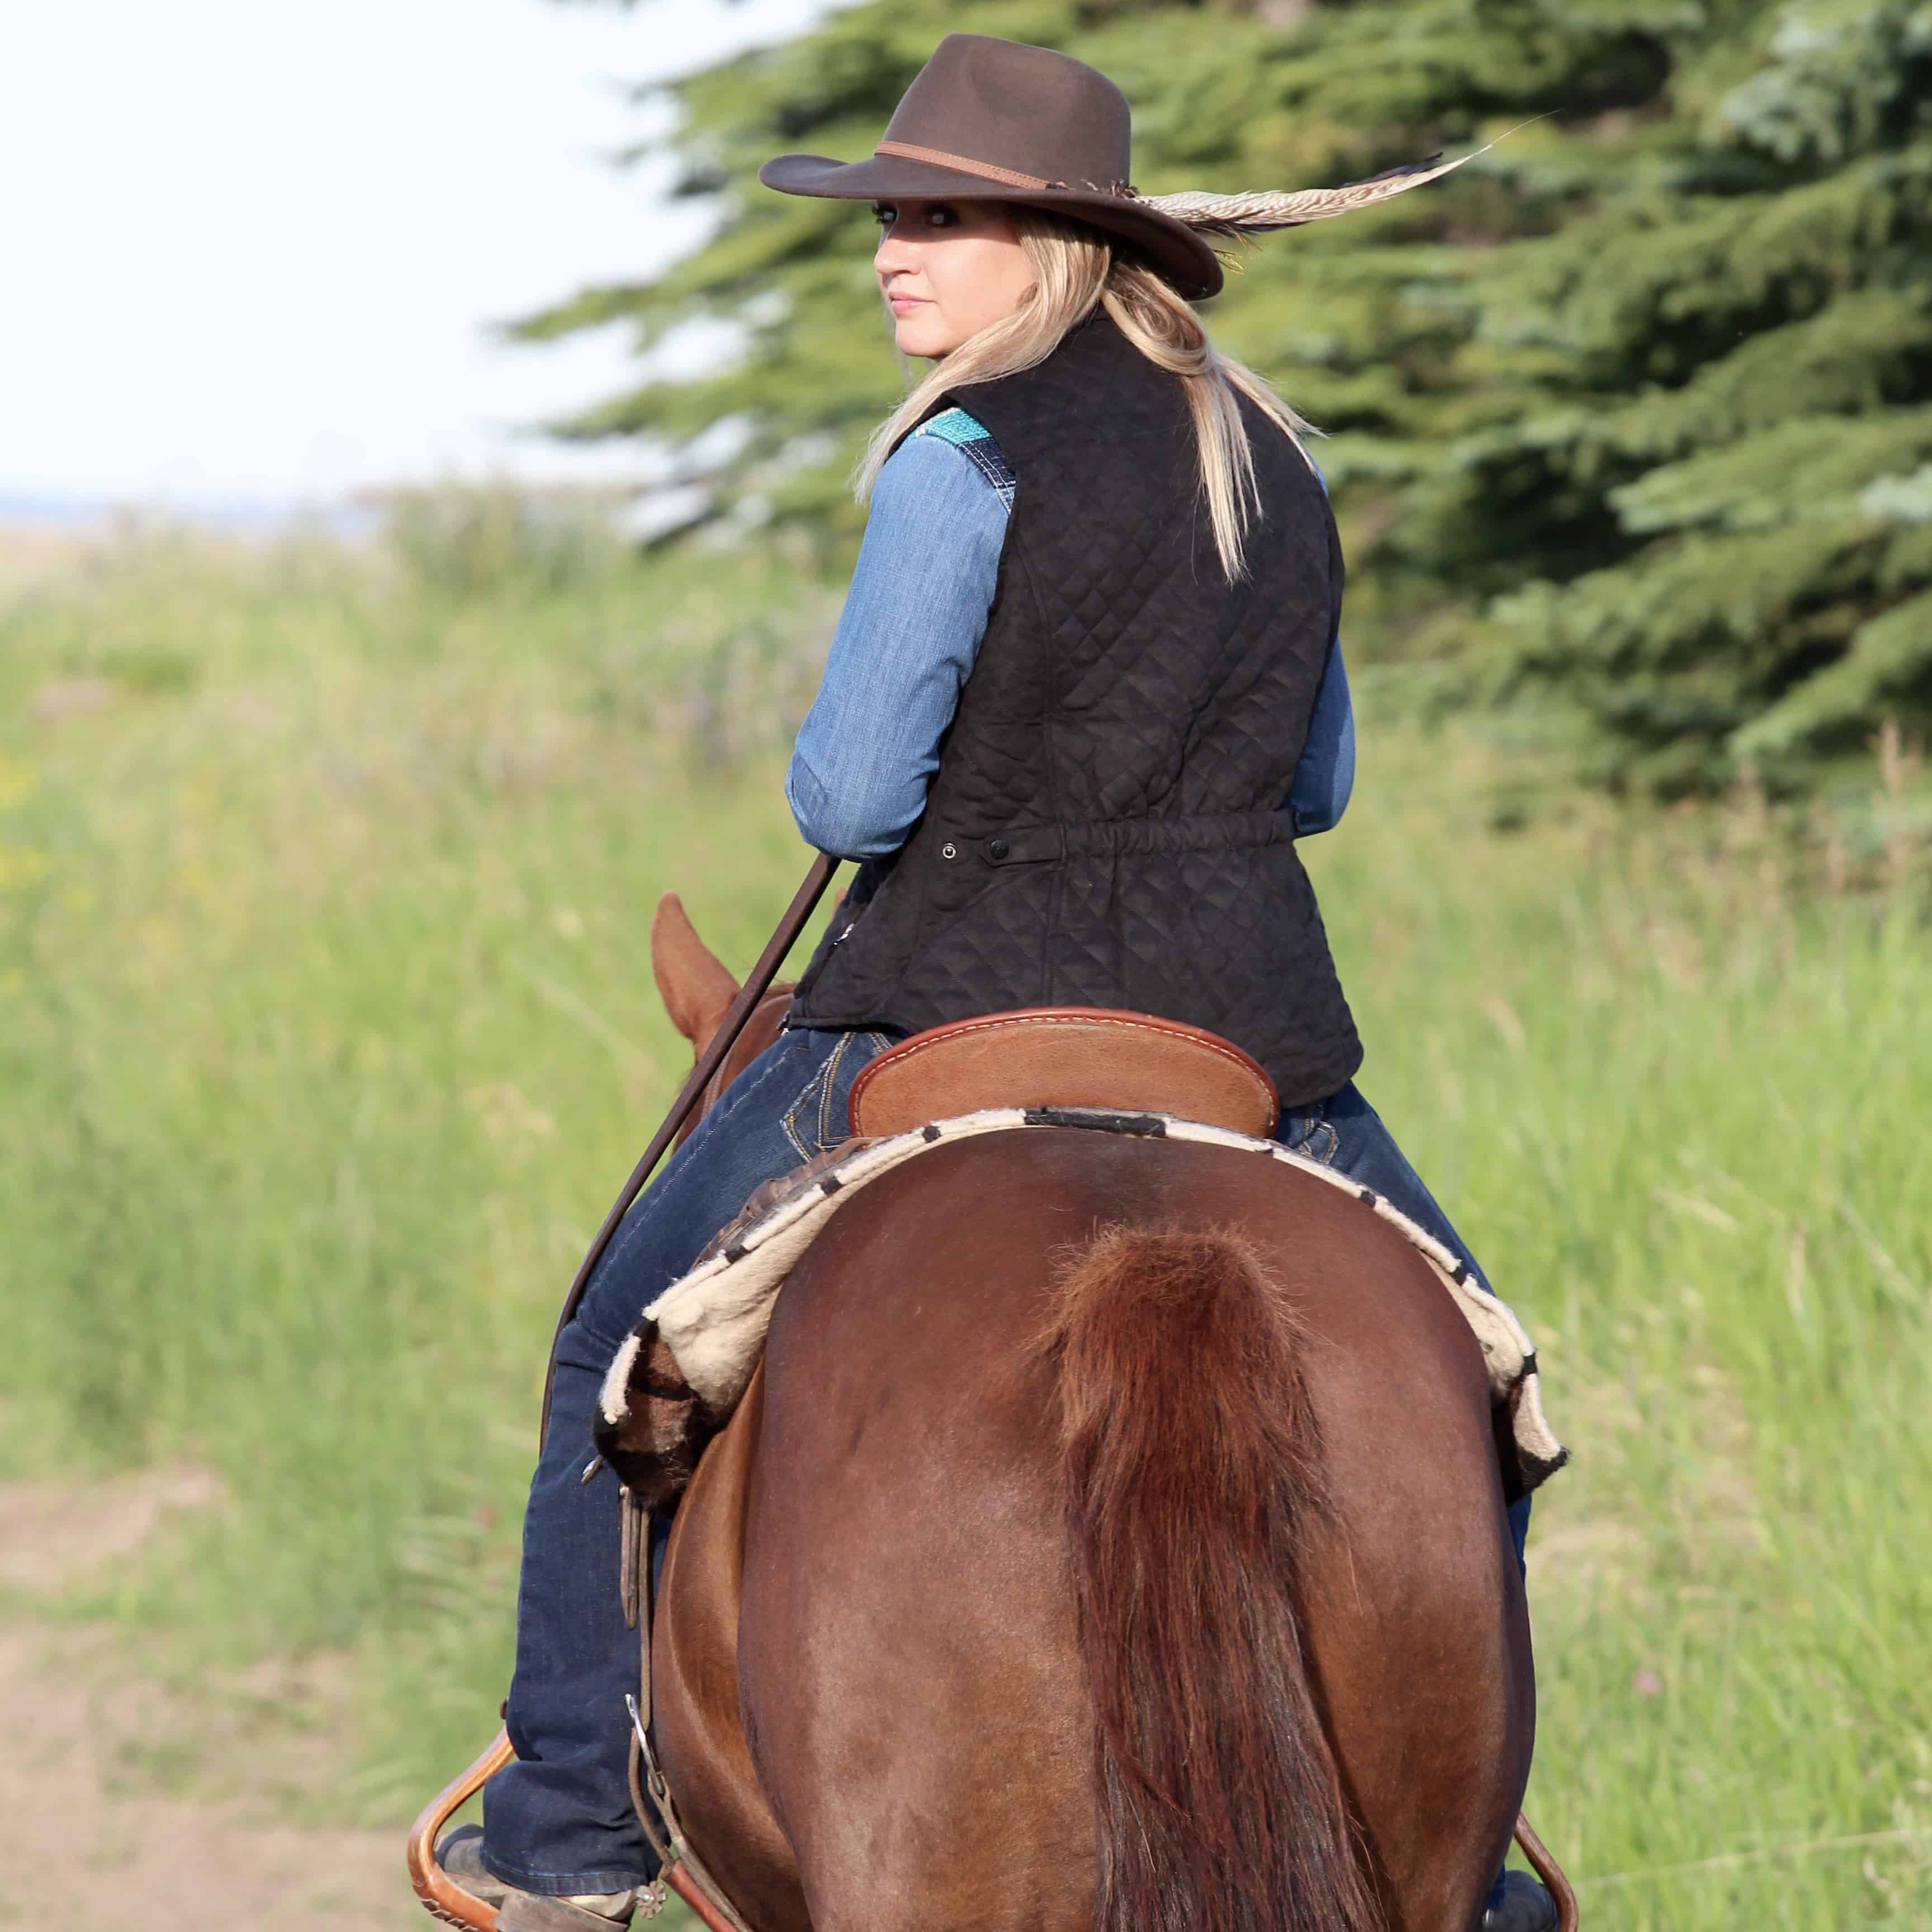 vest from outback trading co on a girl riding a horse with a spring hat on